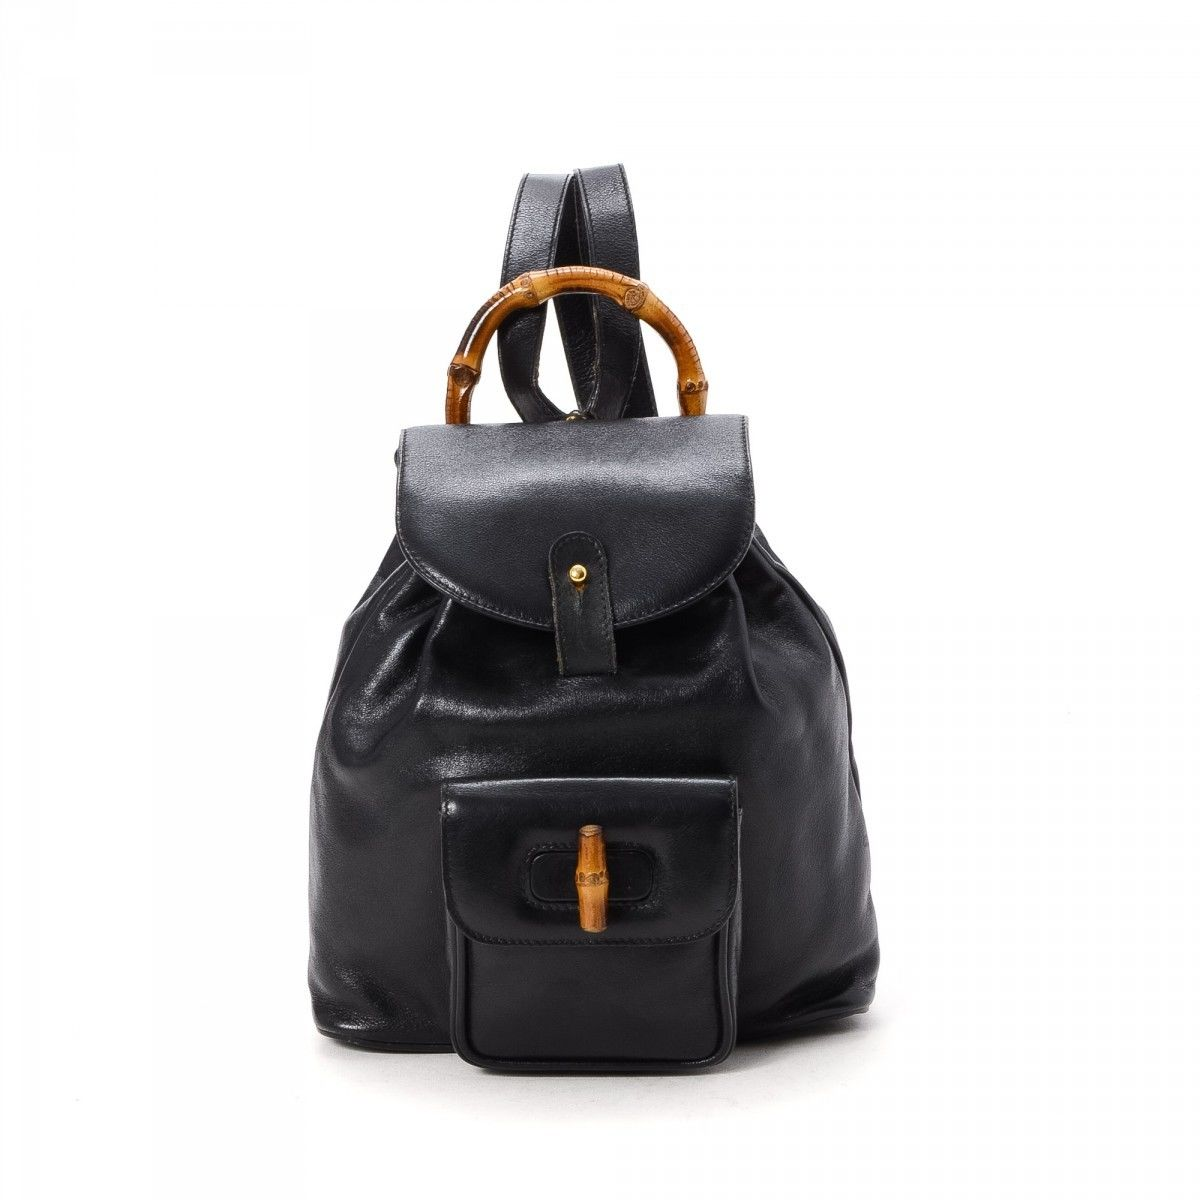 9ceec901d8c3 Gucci Bamboo Backpack Vintage- Fenix Toulouse Handball